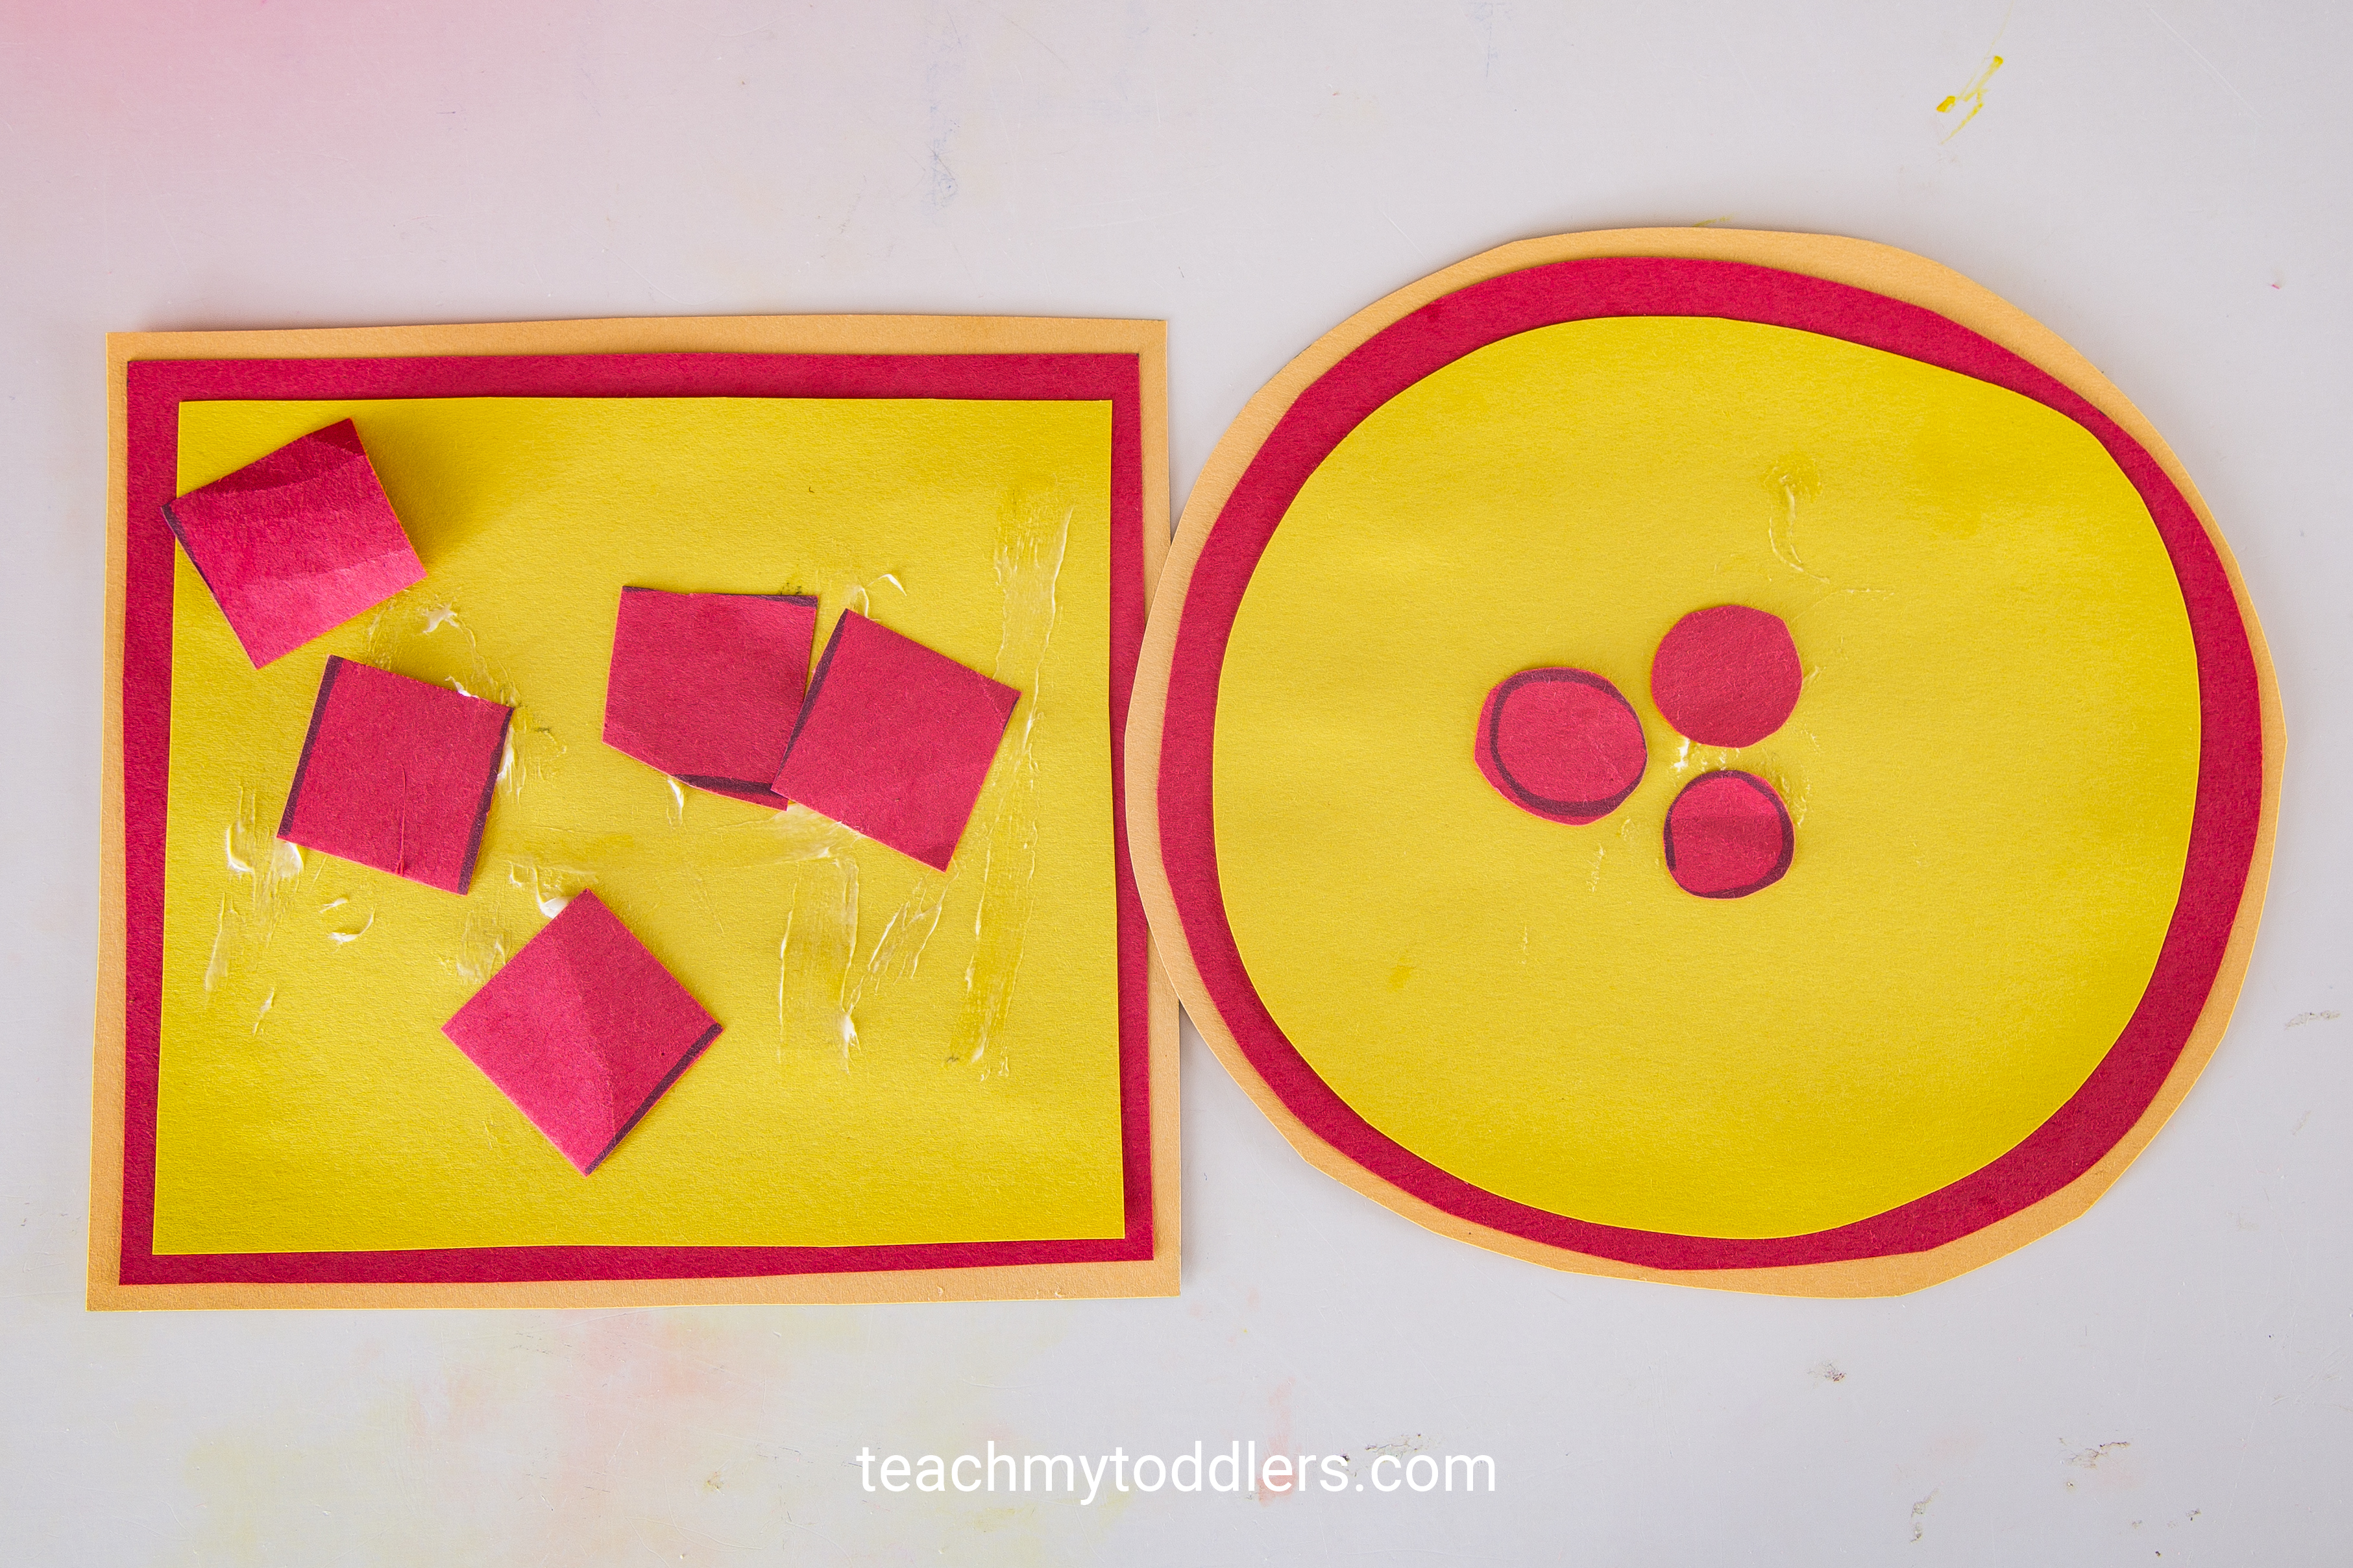 Discover how to use this pizza game to teach your toddlers shapes